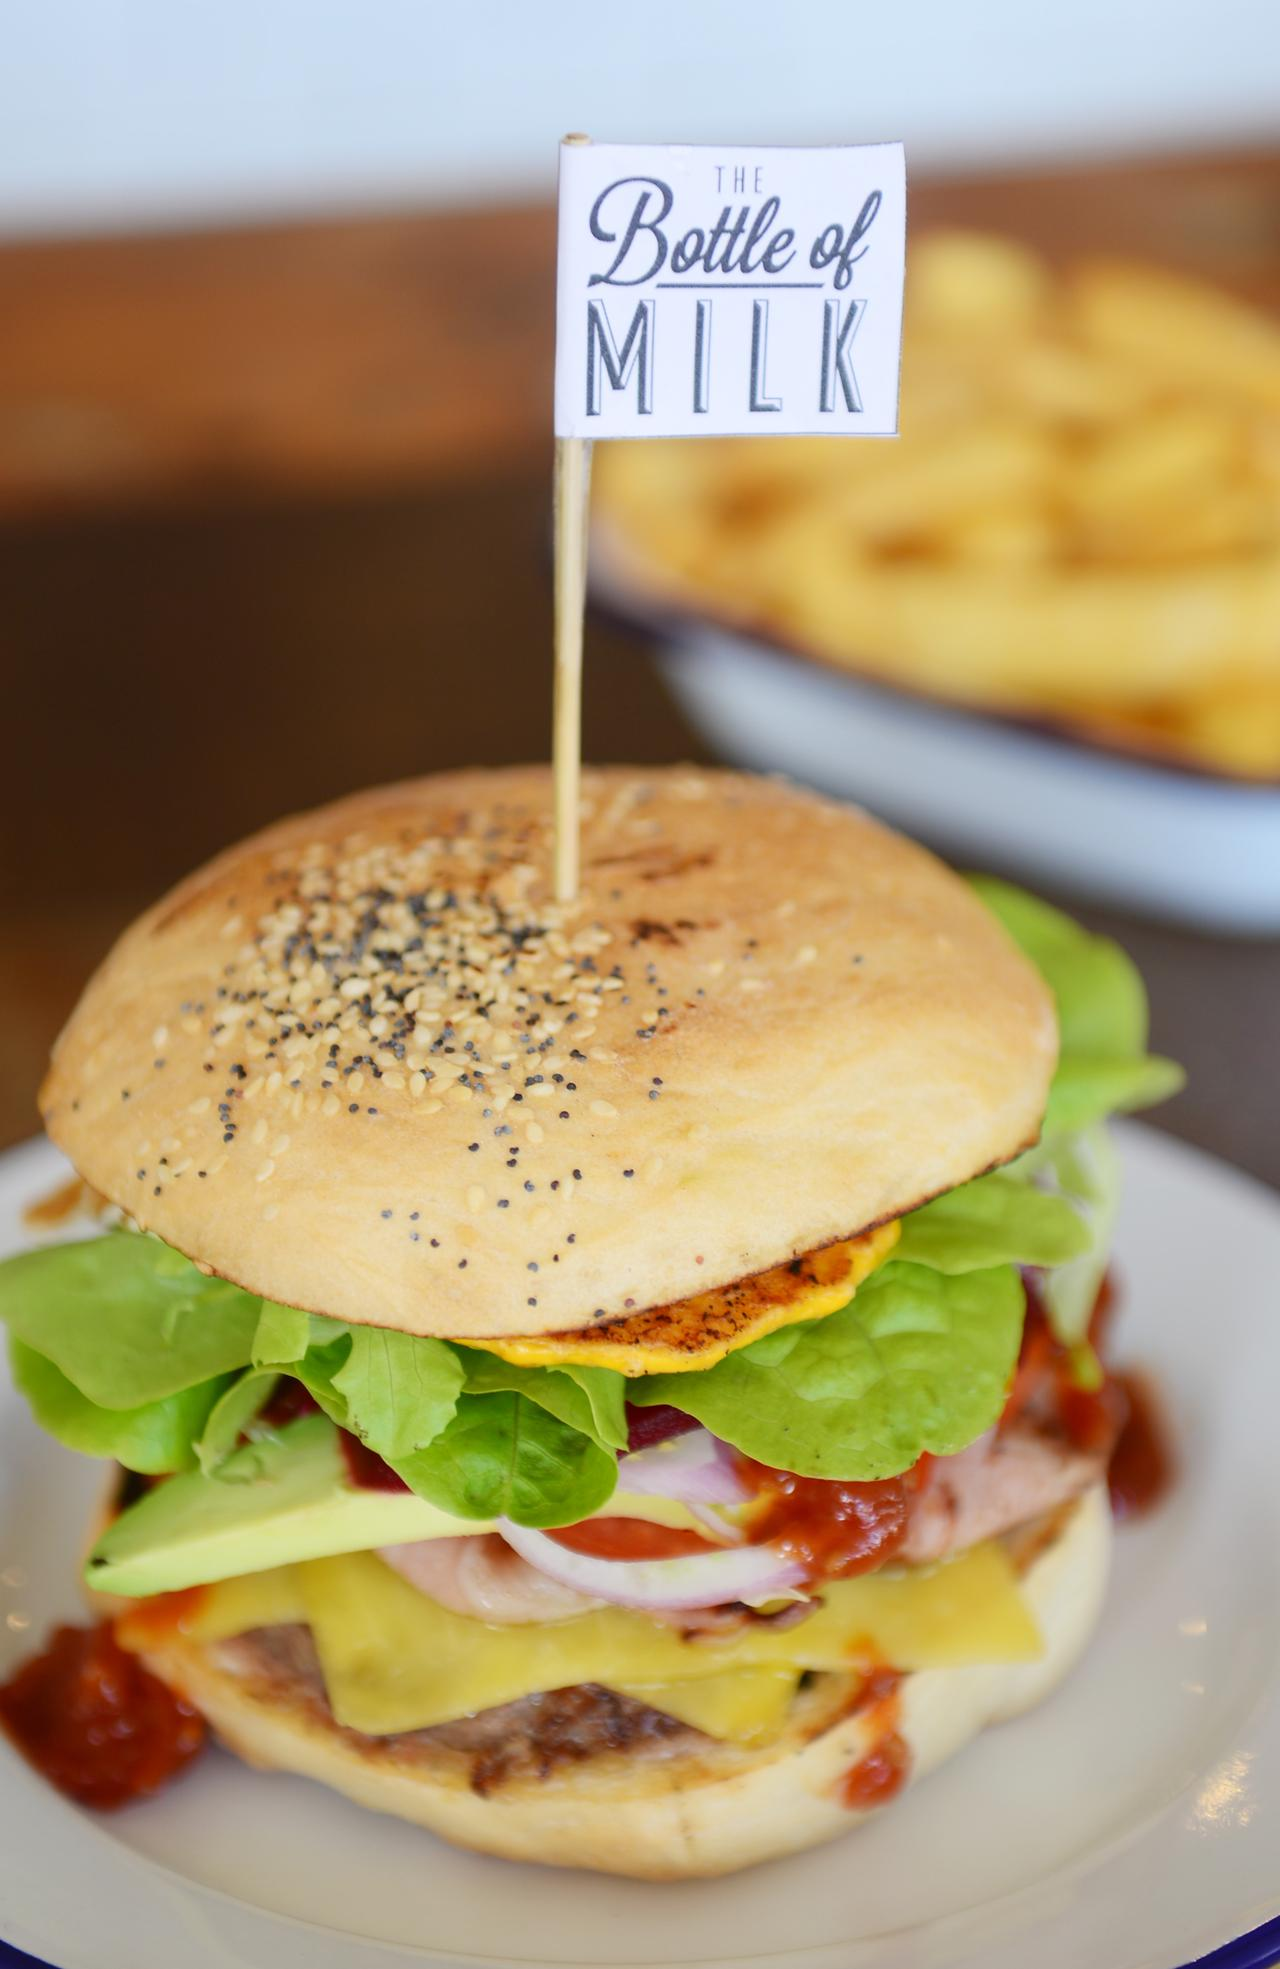 Lorne's famed burger bar The Bottle Of Milk is opening in Torquay this week. Burgers, Coffee. Picture: Bear Mitch